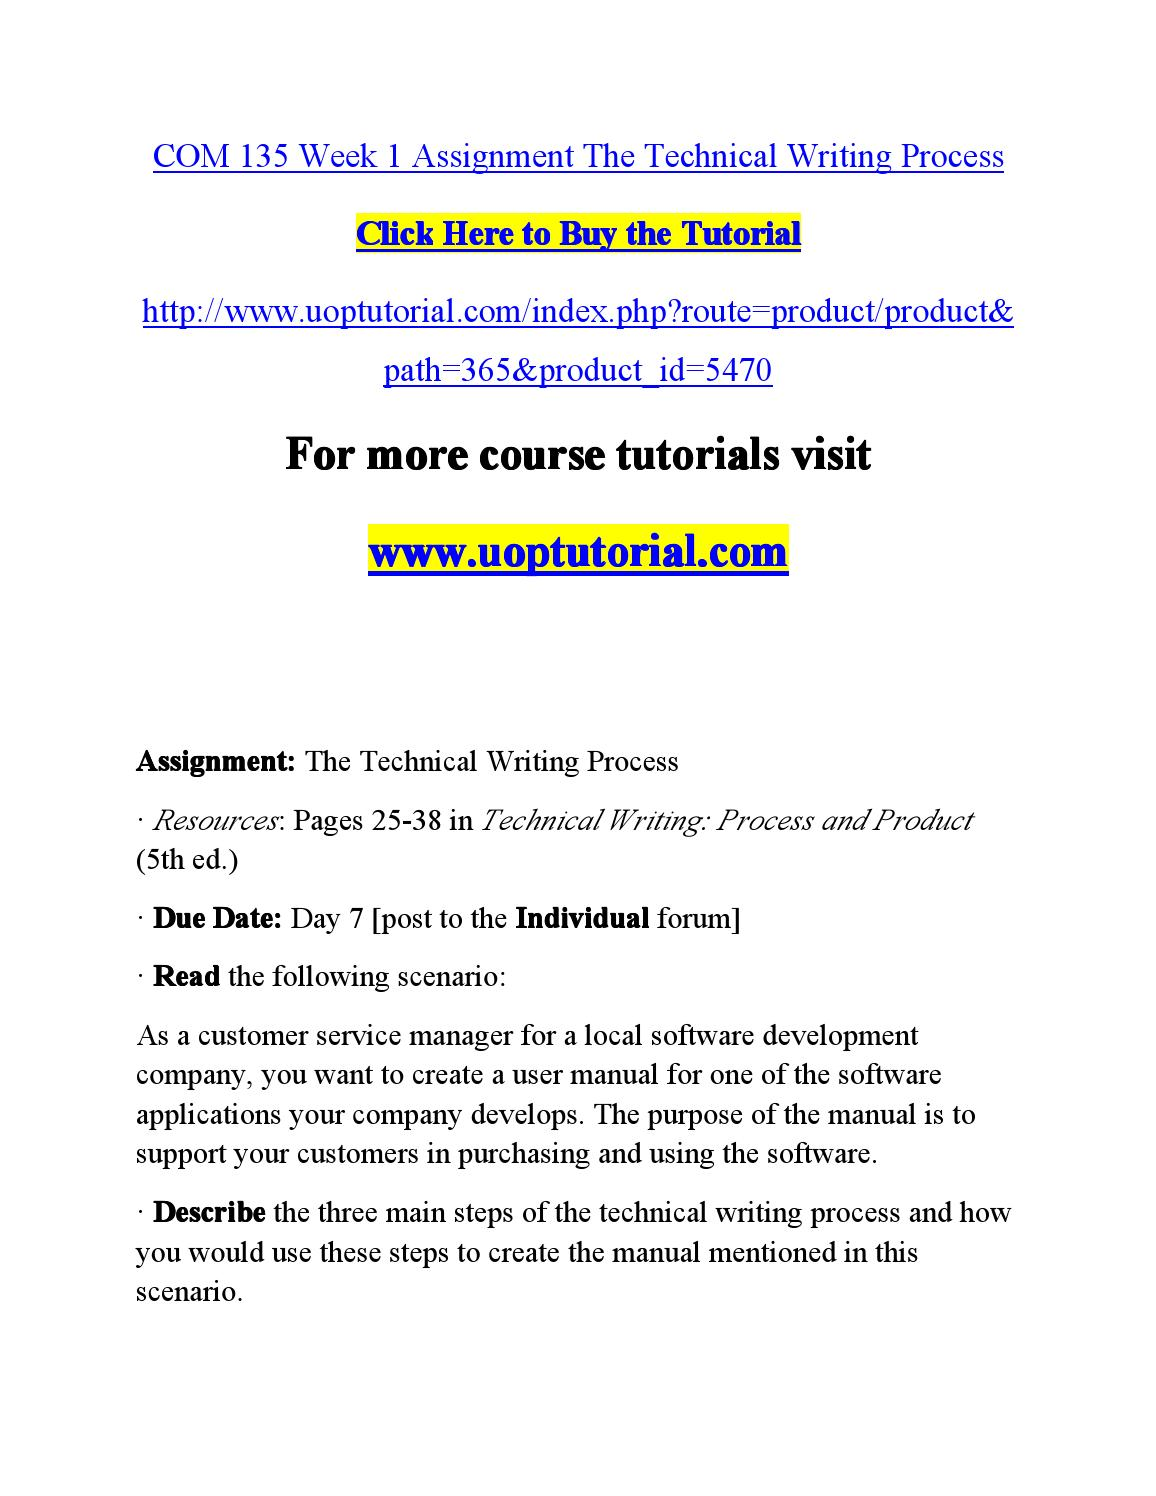 Klariti technical writing | technical writing tips and tools.